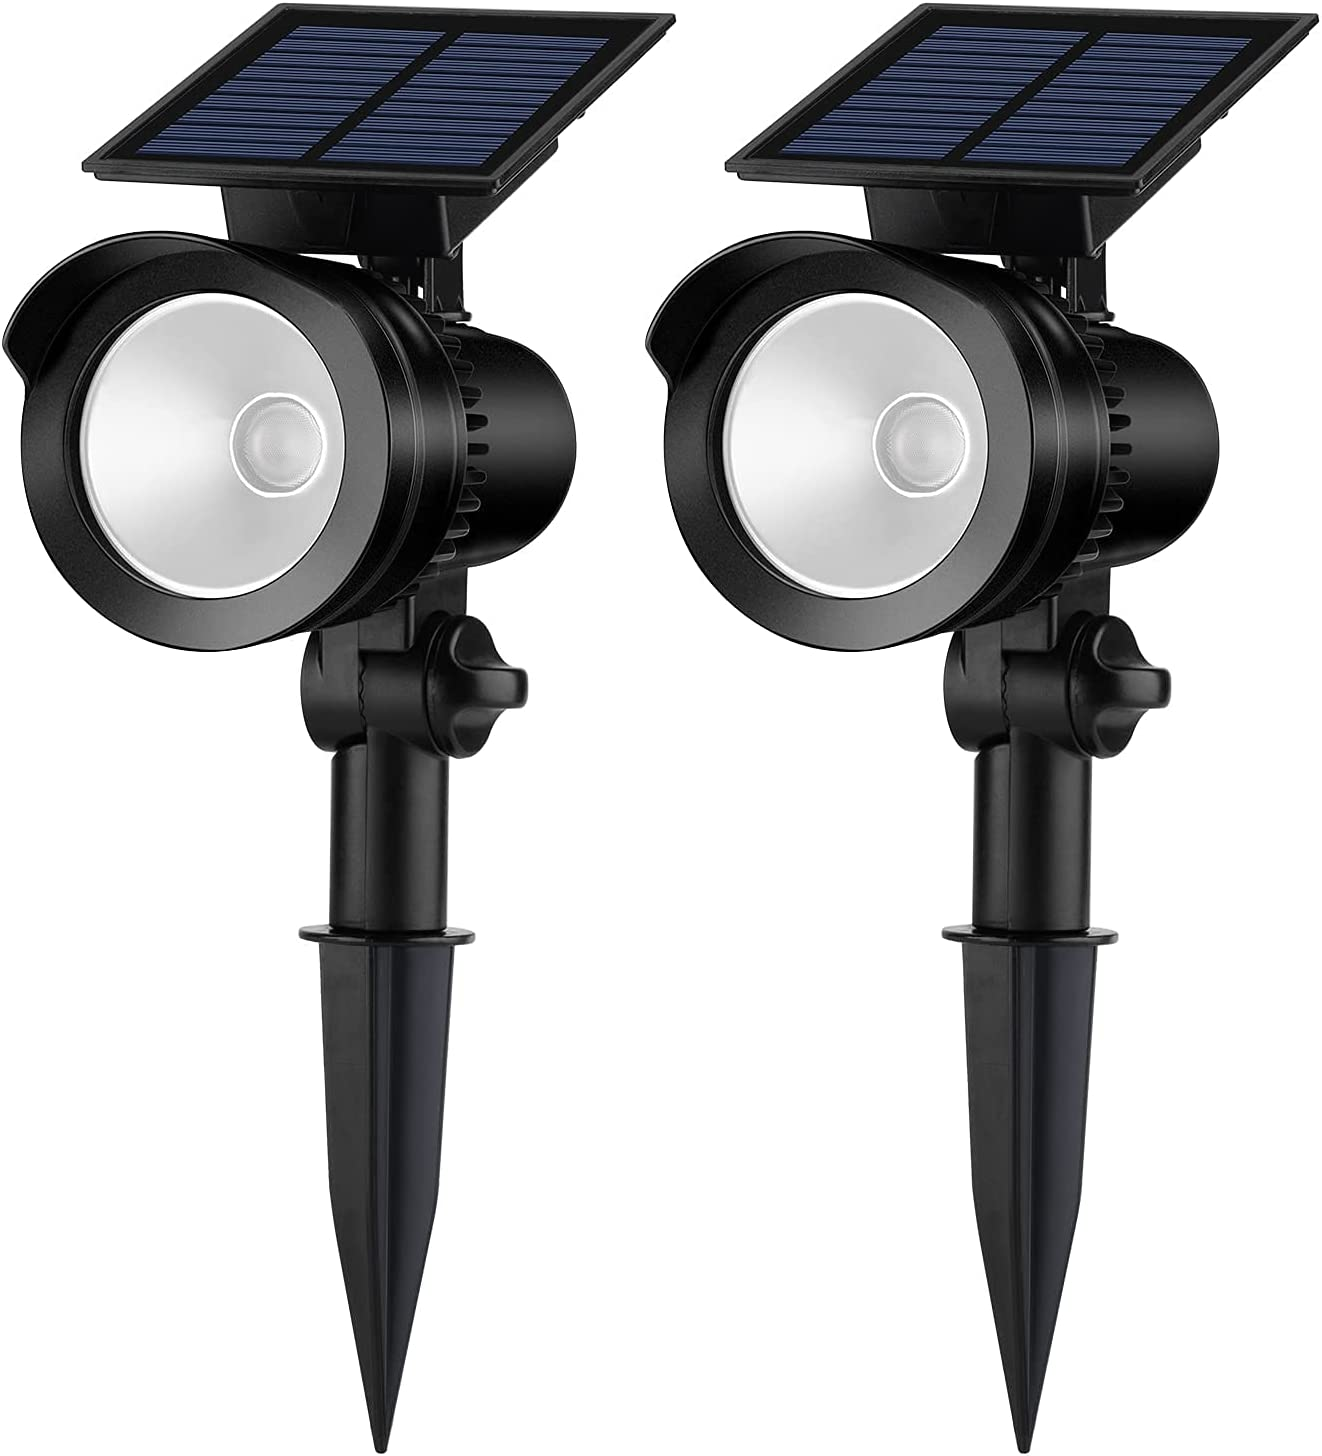 Brightown Solar Spot Lights Outdoor Spotlight with 360 Degree Rotation Panel Landscape Pathway Stake Solar Garden Lights Waterproof for Flag Pole Patio Yard Tree Patio Porch Path Warm White 2 Pack